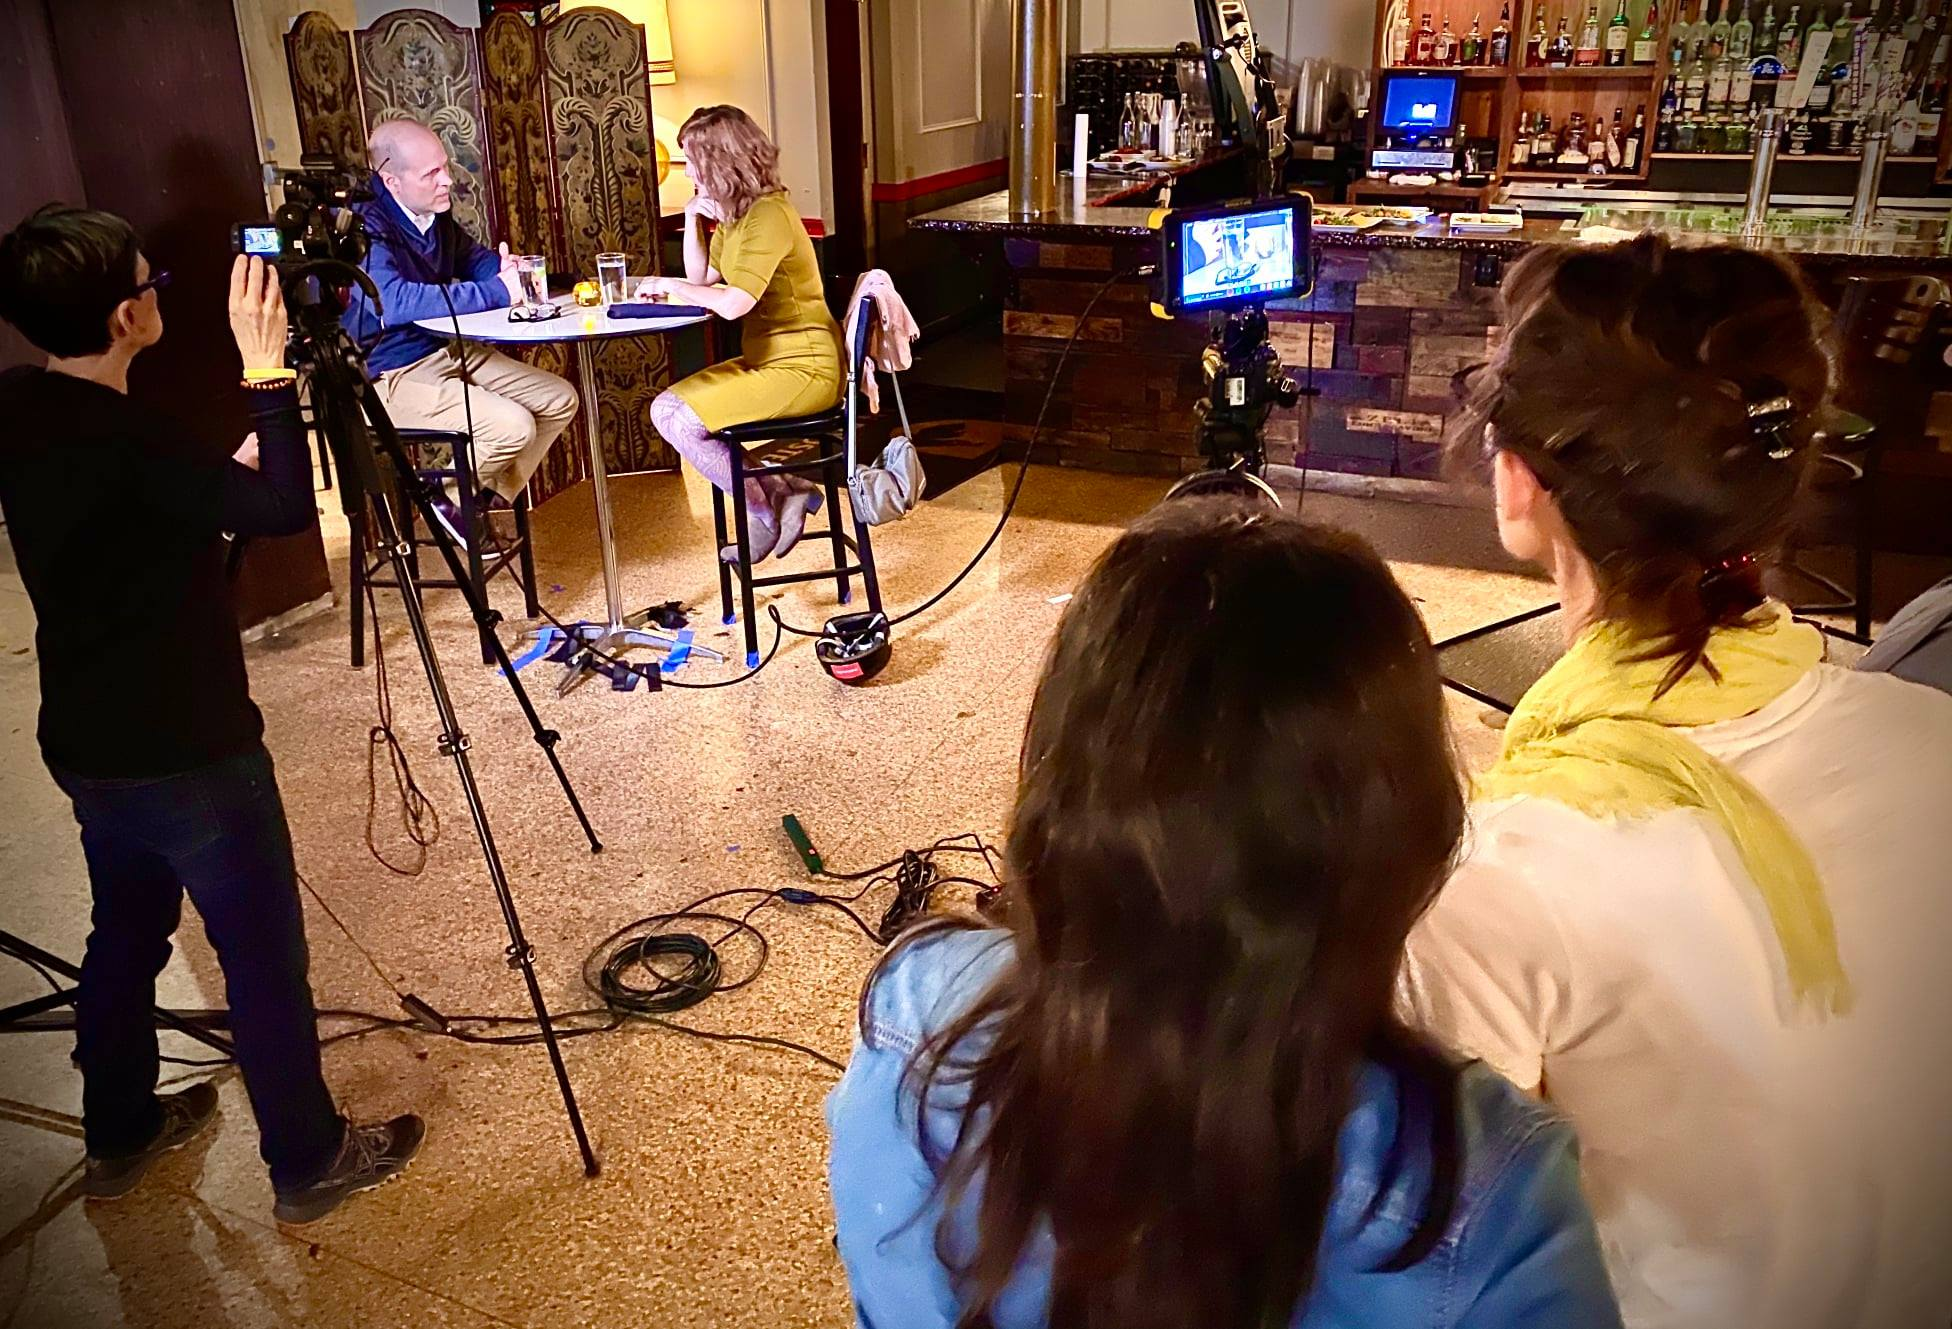 A photo of a film set with two actors seated at a table and a person behind a camera.